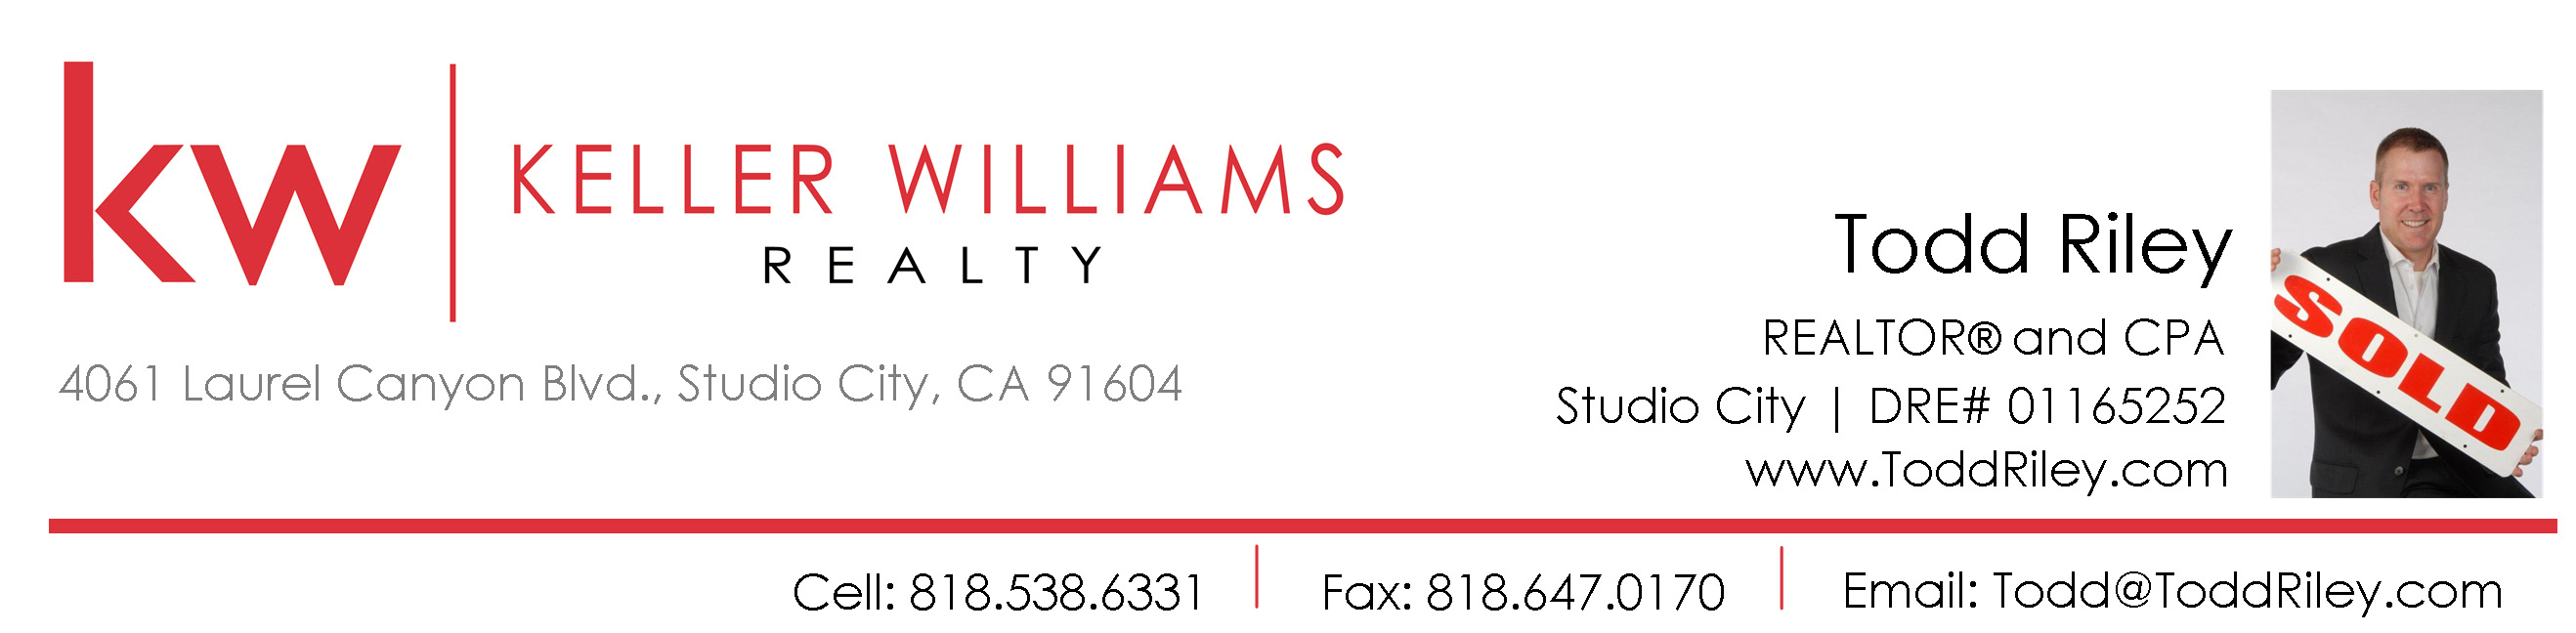 Todd Riley - Bell Canyon Real Estate Agent